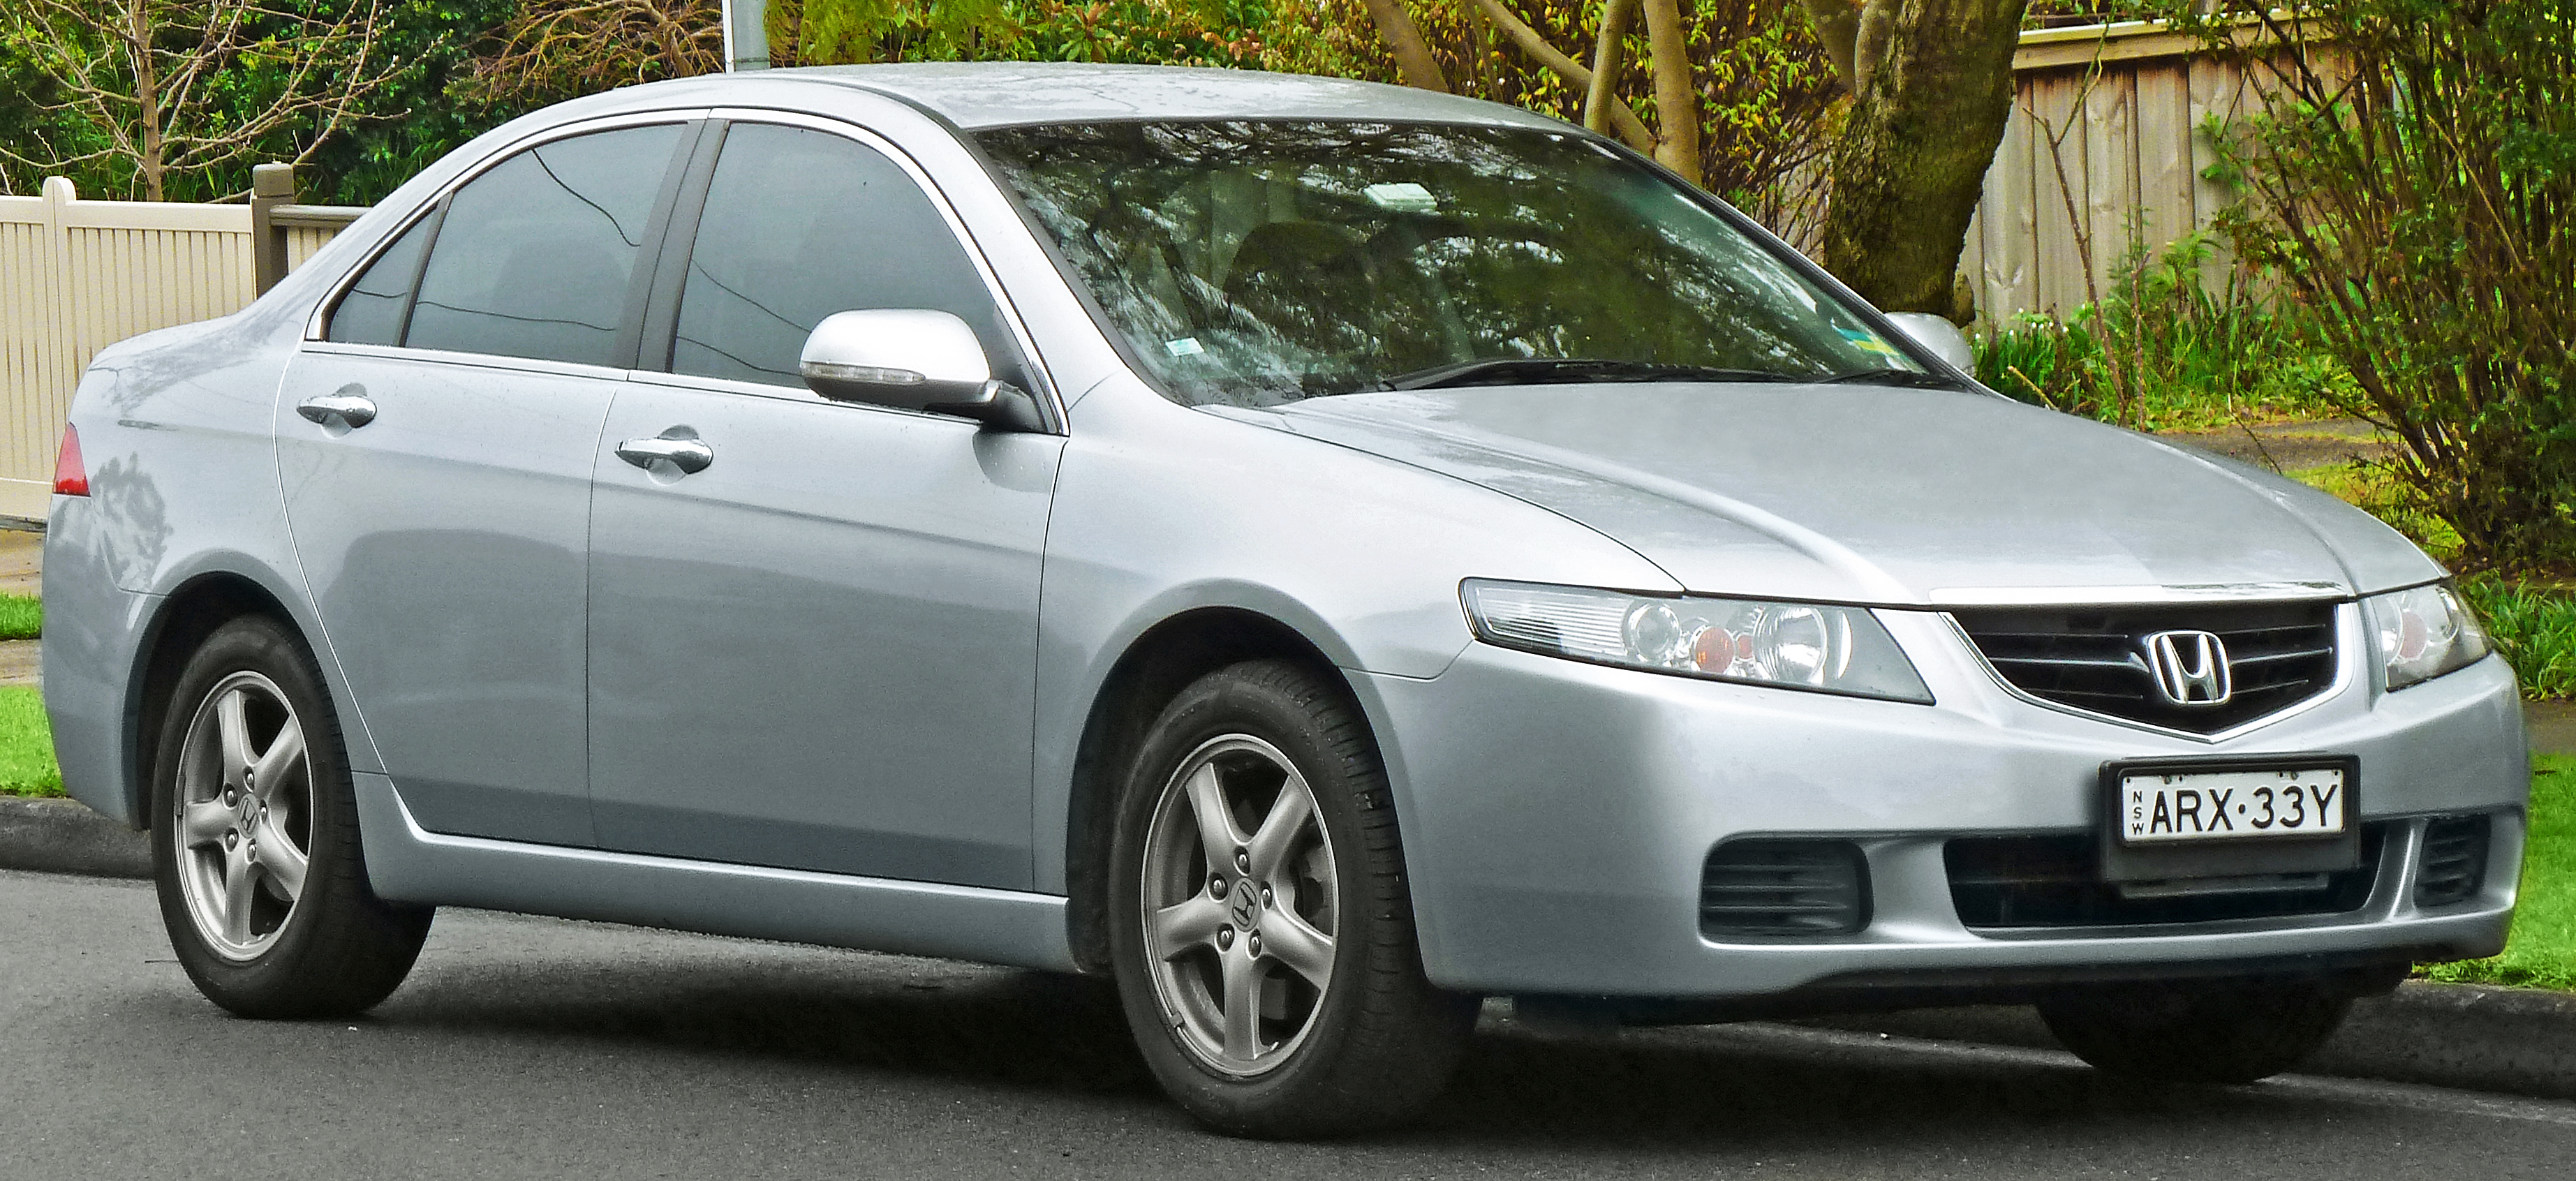 Cars honda accord vii 2002 #12